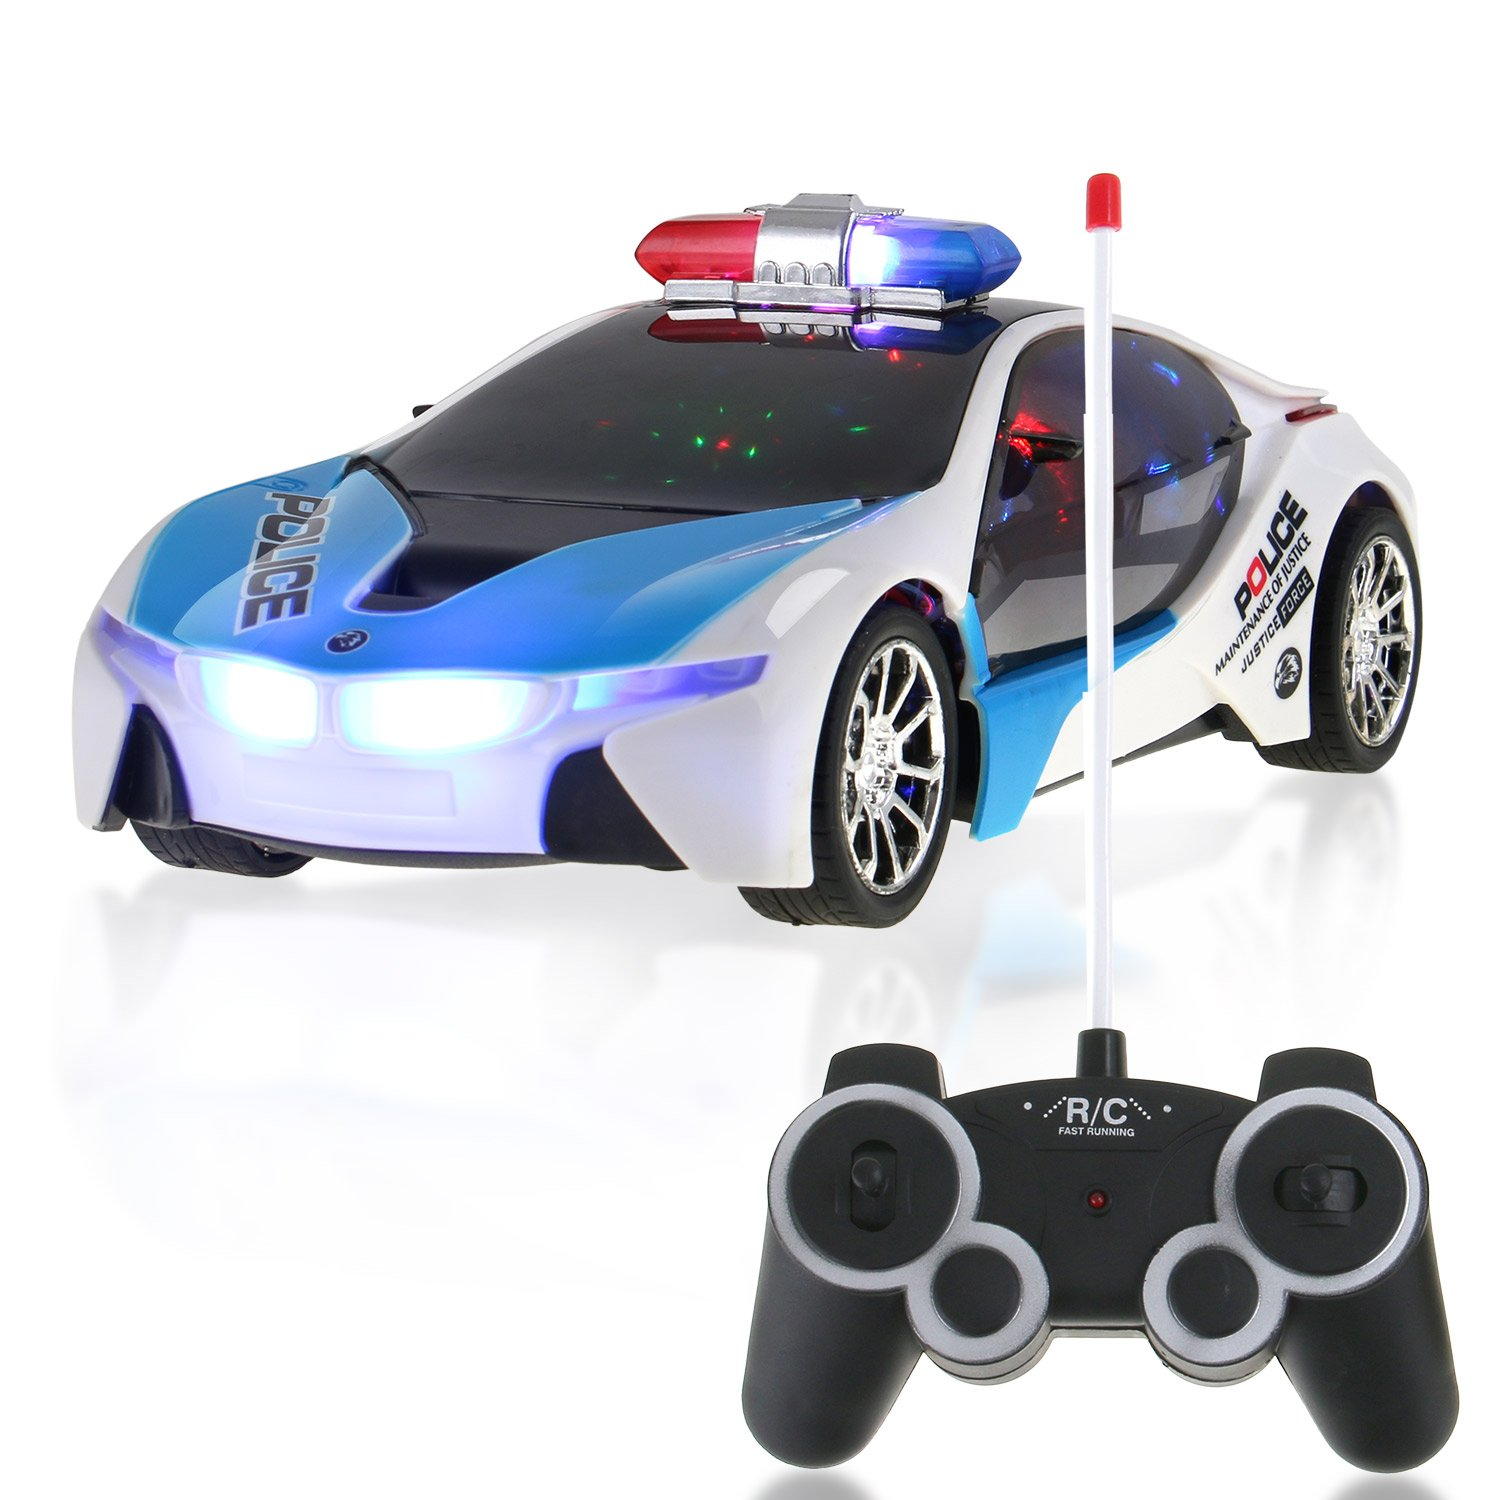 Flashing Lights Sounds Liberty Imports RC Concept Police Car 1:16 Scale Full Function Remote Radio Control